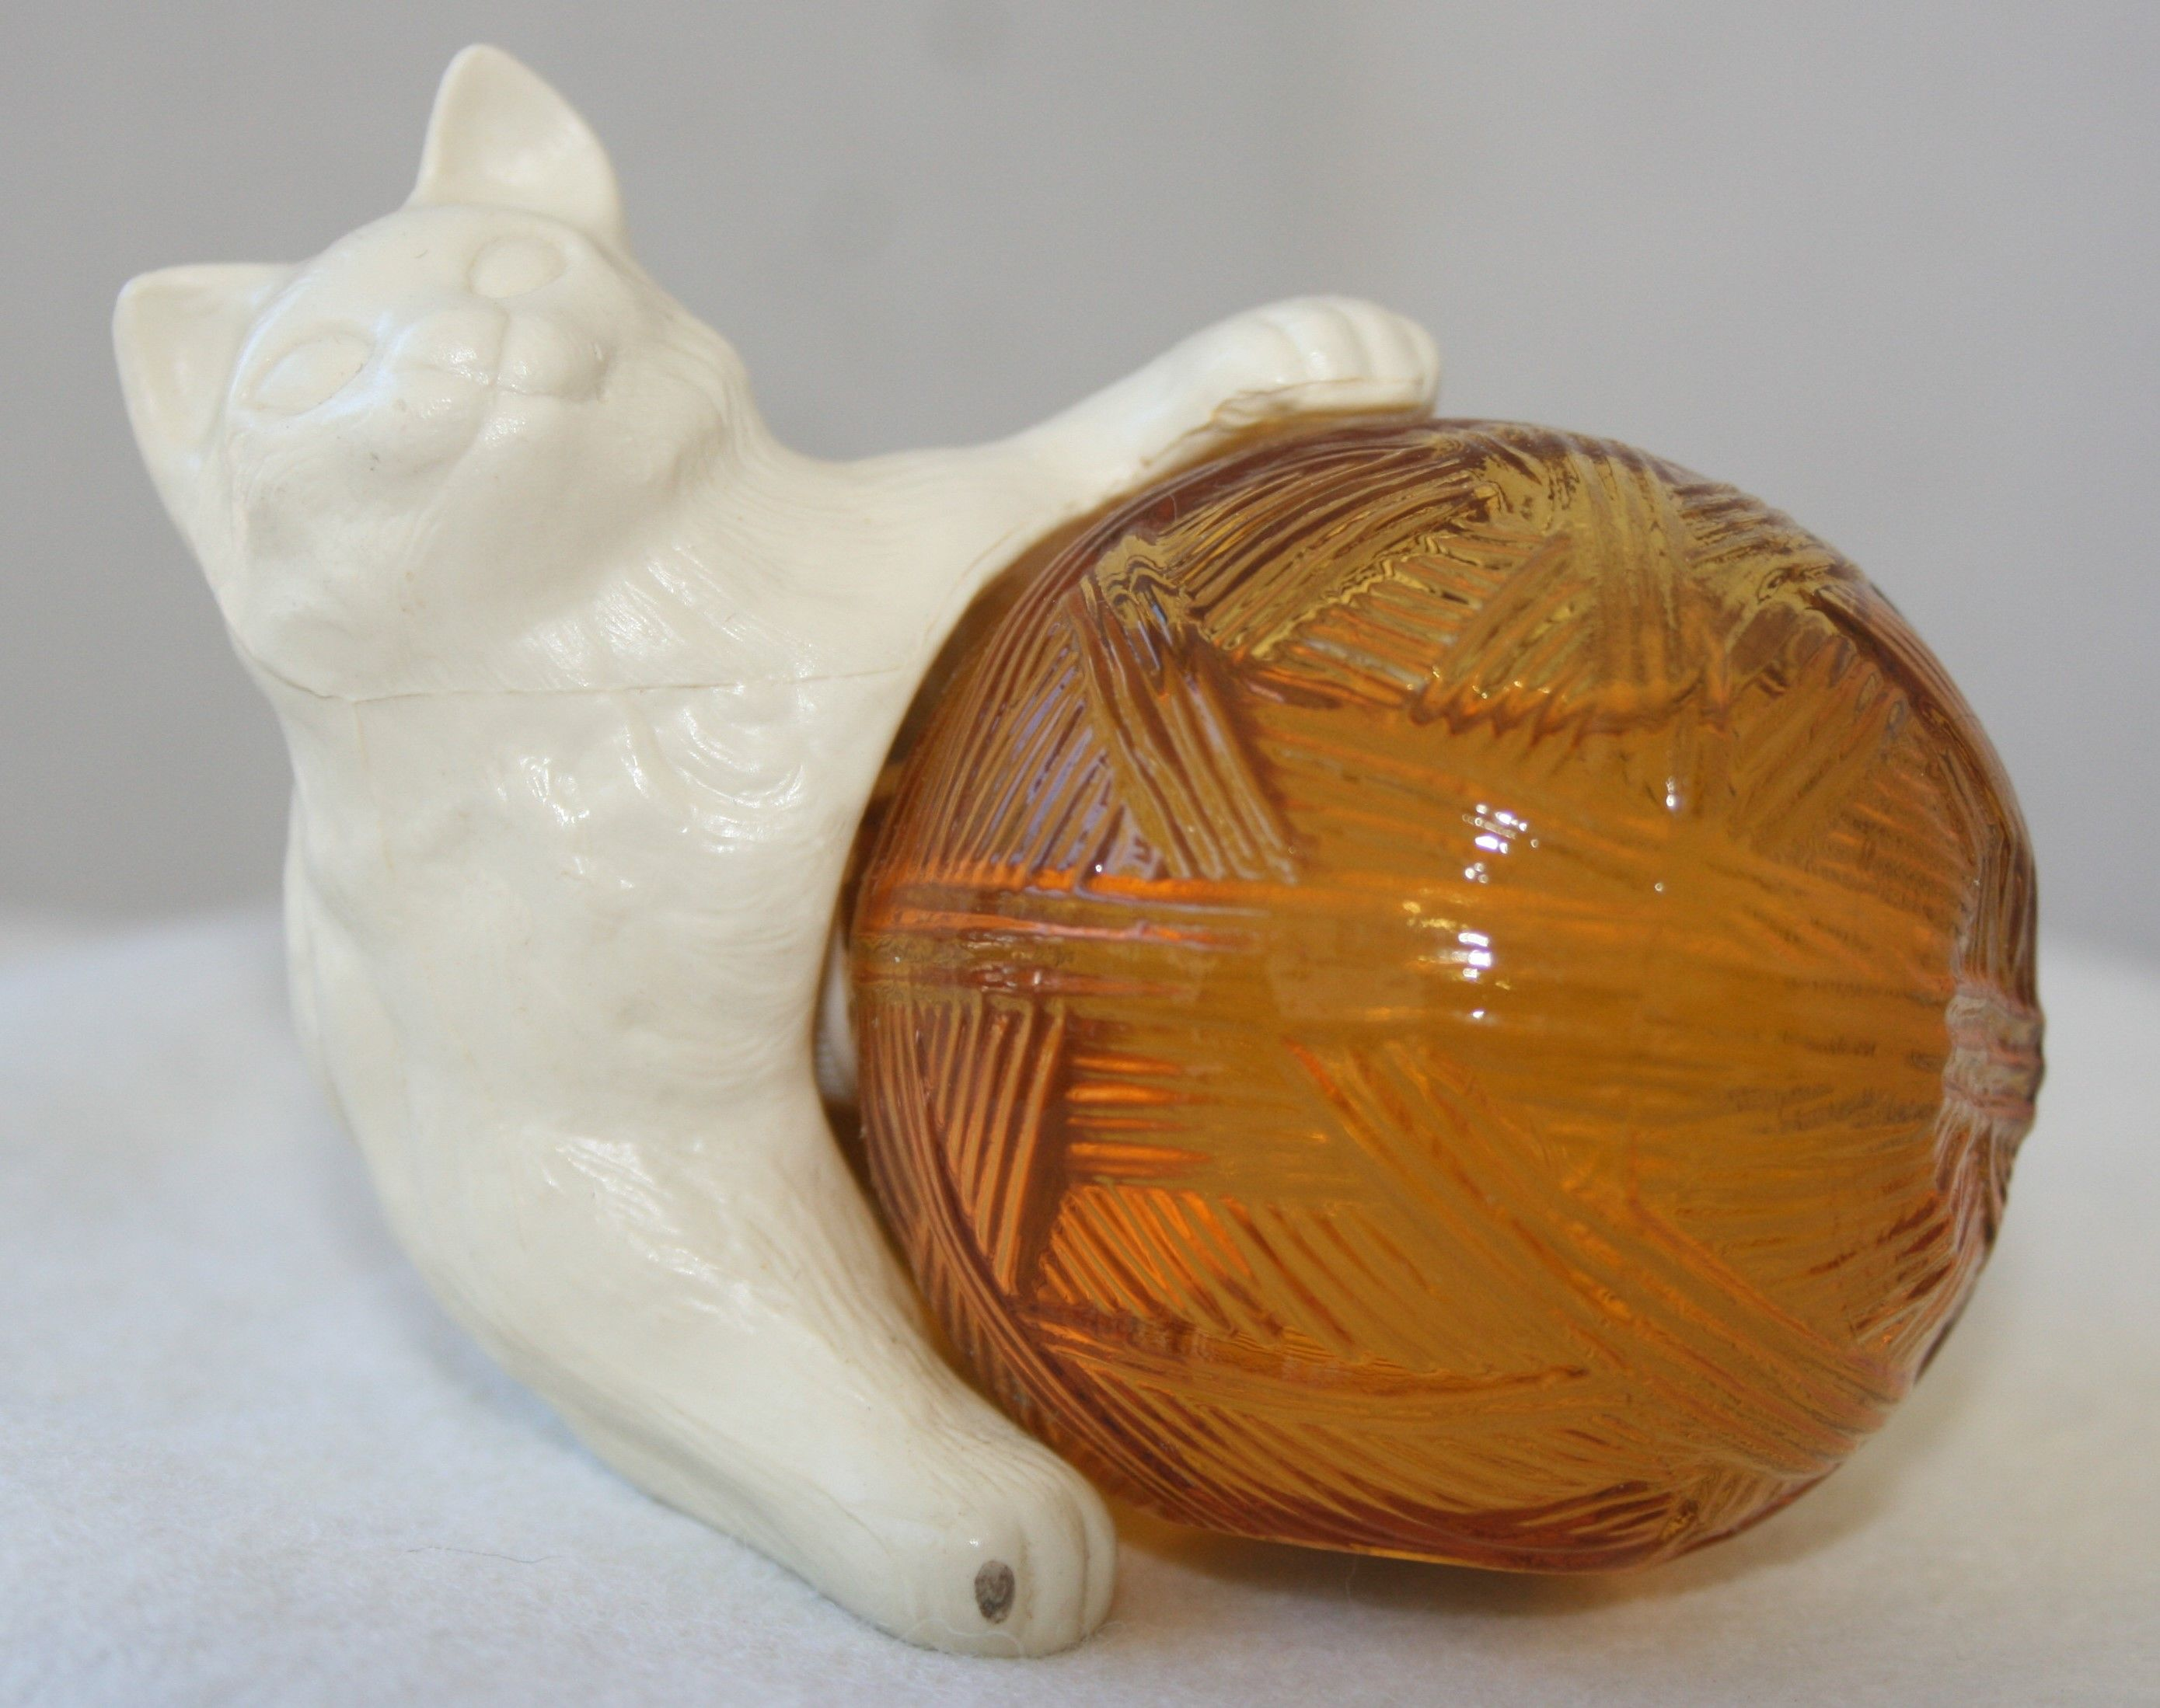 Vintage Avon Kitten Petite Made 1973 1974 1 5 Oz Amber Glass Ball White Plastic Kitty For A Cap Come In Sonnet Or Moonw Vintage Avon Amber Glass Glass Ball